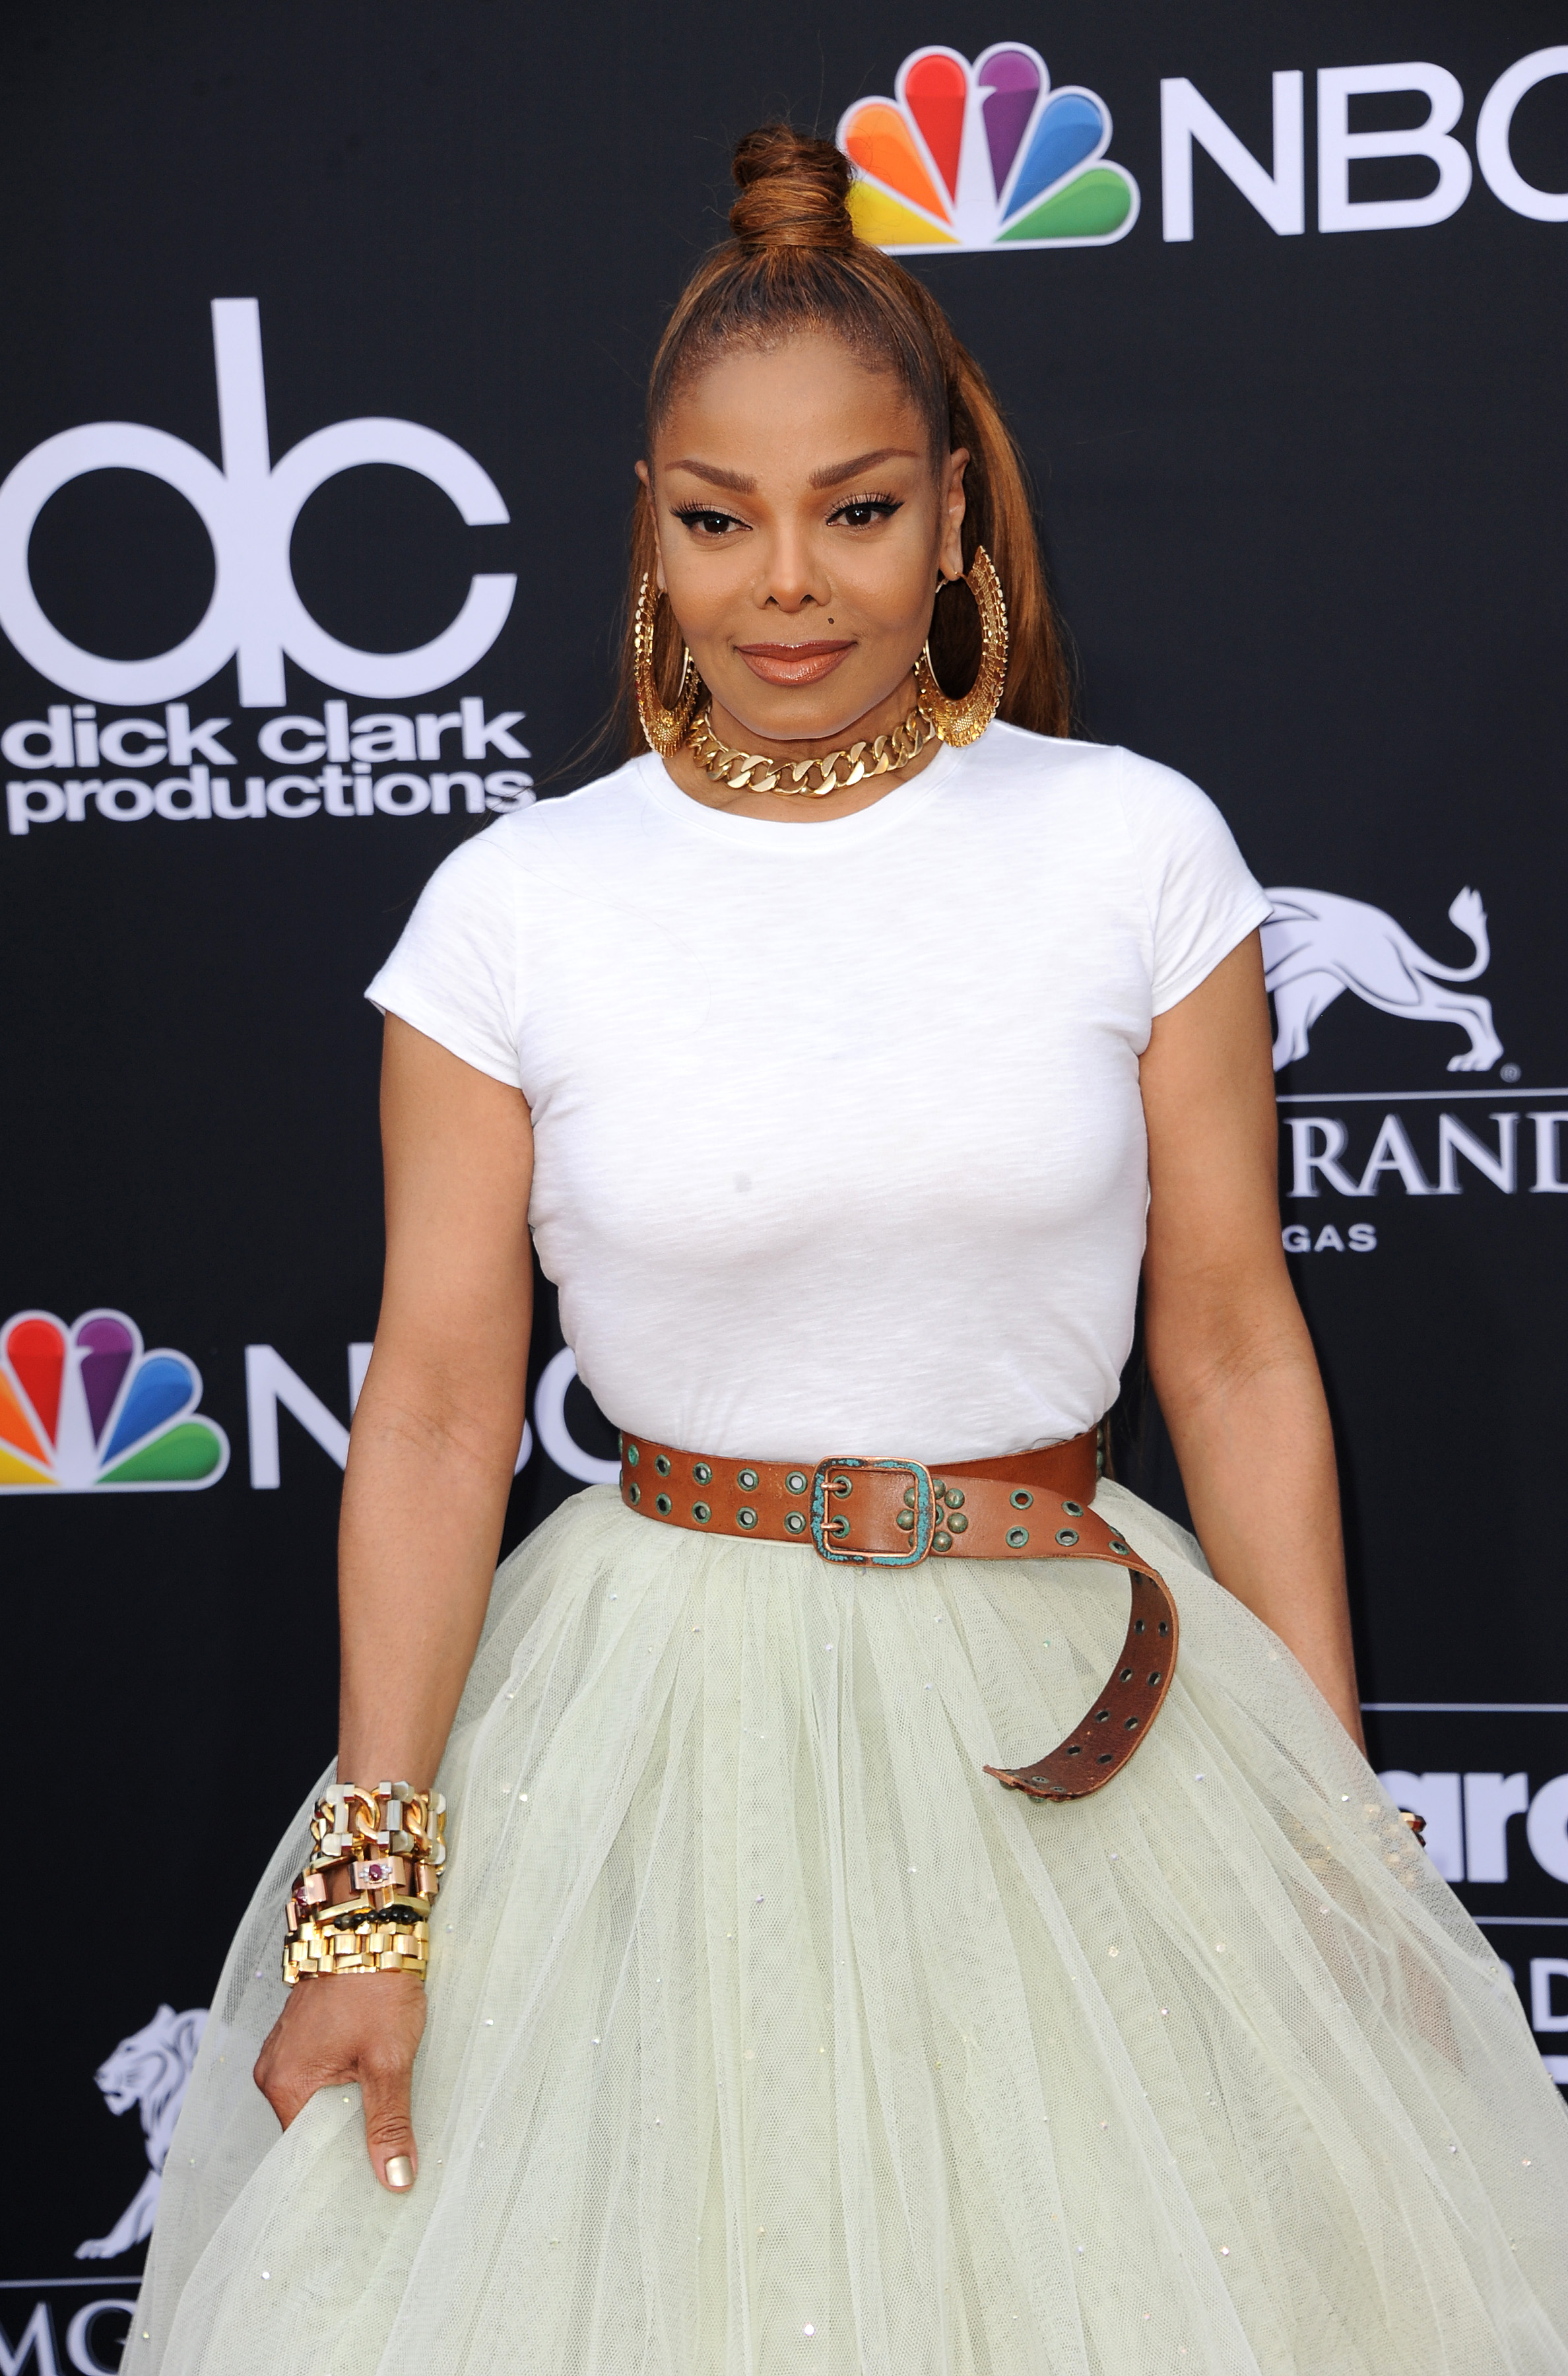 Janet Jackson Talks About Baby Eissa's Musical Talent & More